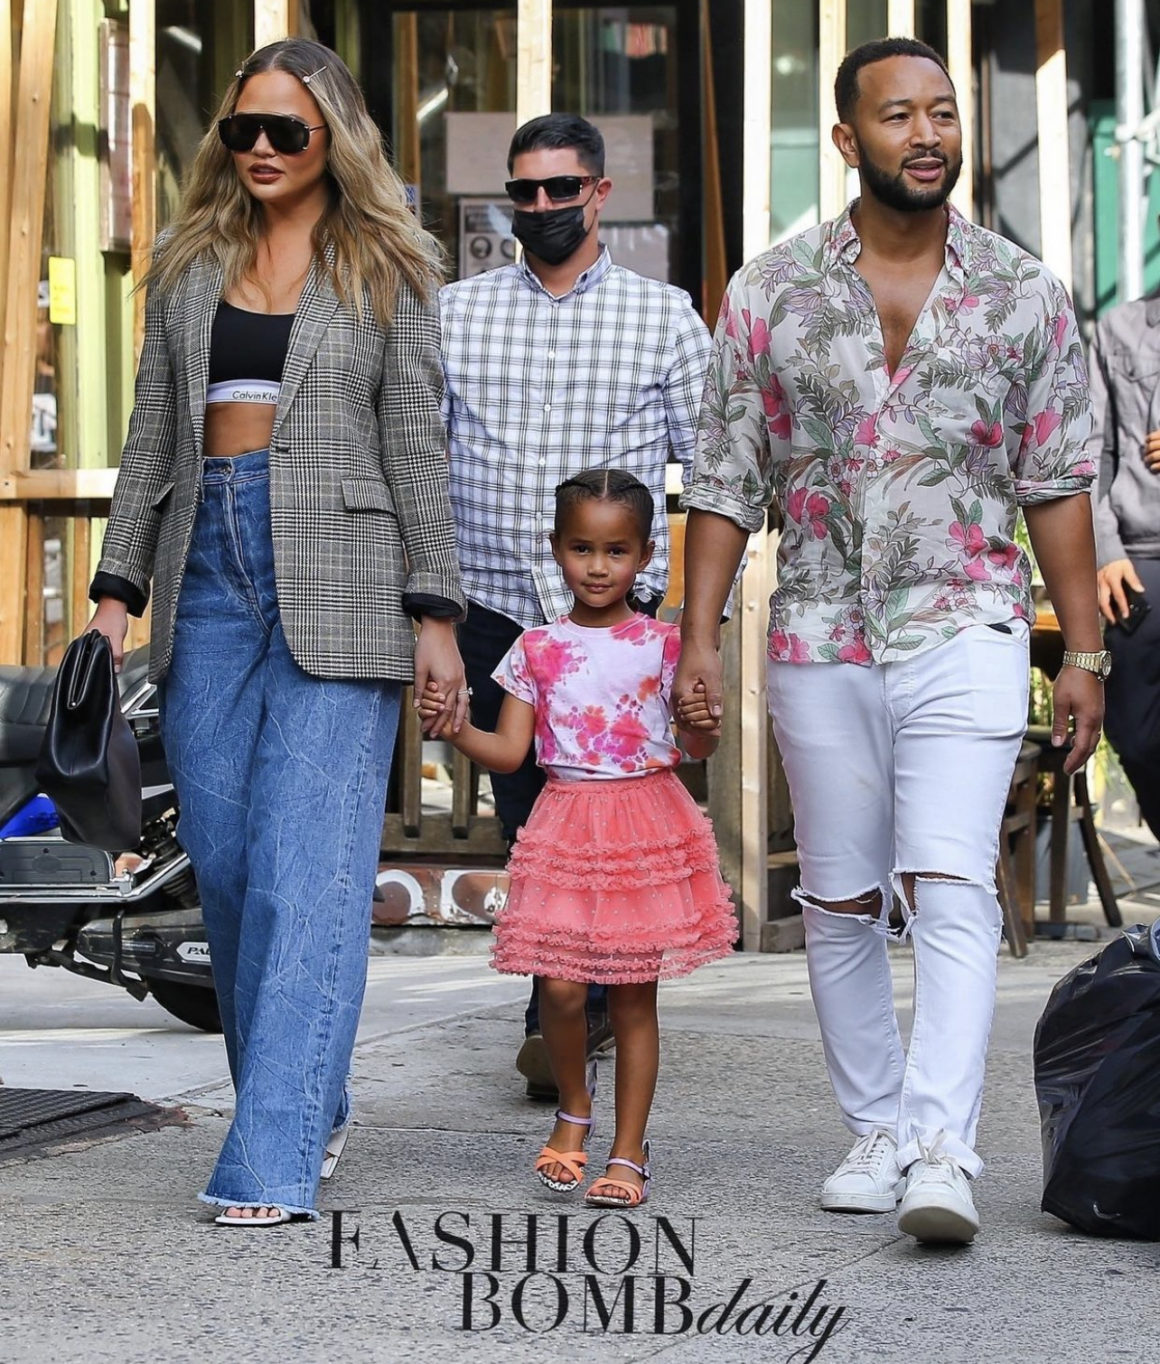 Chrissy Teigen Spotted on Family Outing in SoHo With John Legend and Daughter Luna Wearing Casual-Chic Look Including Saint Laurent Checked Blazer, Calvin Klein Black Logo Bralette, Dries Van Noten Wide Leg Jeans, and Bottega Veneta Accessories